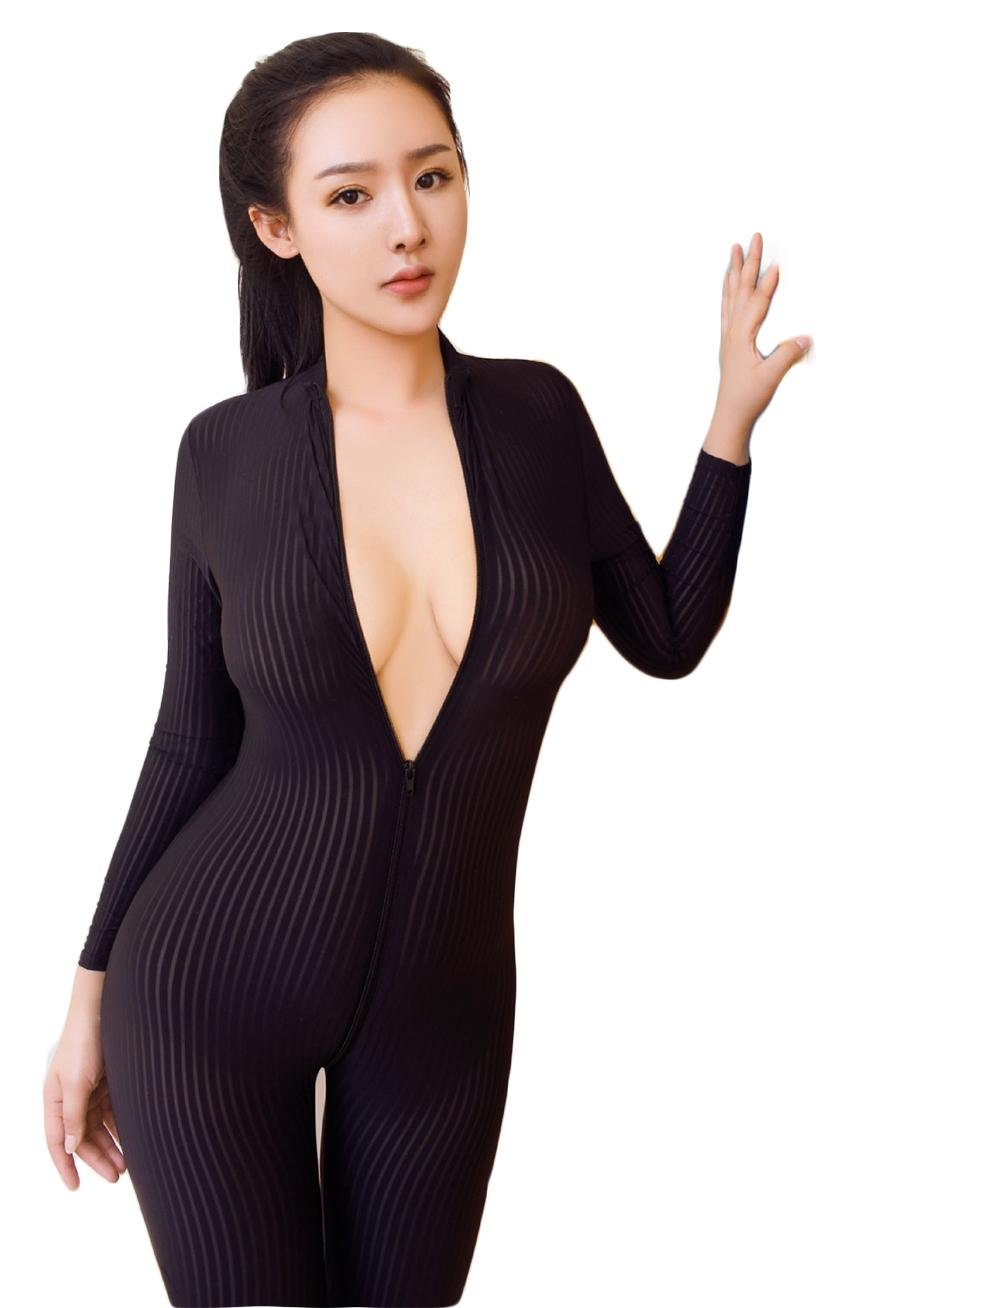 Women Sexy Open up Siamese Beam suit Lingerie Costume Catsuit Catwoman Jumpsuit Clubwear, black, one size: Amazon.co.uk: Sports & Outdoors